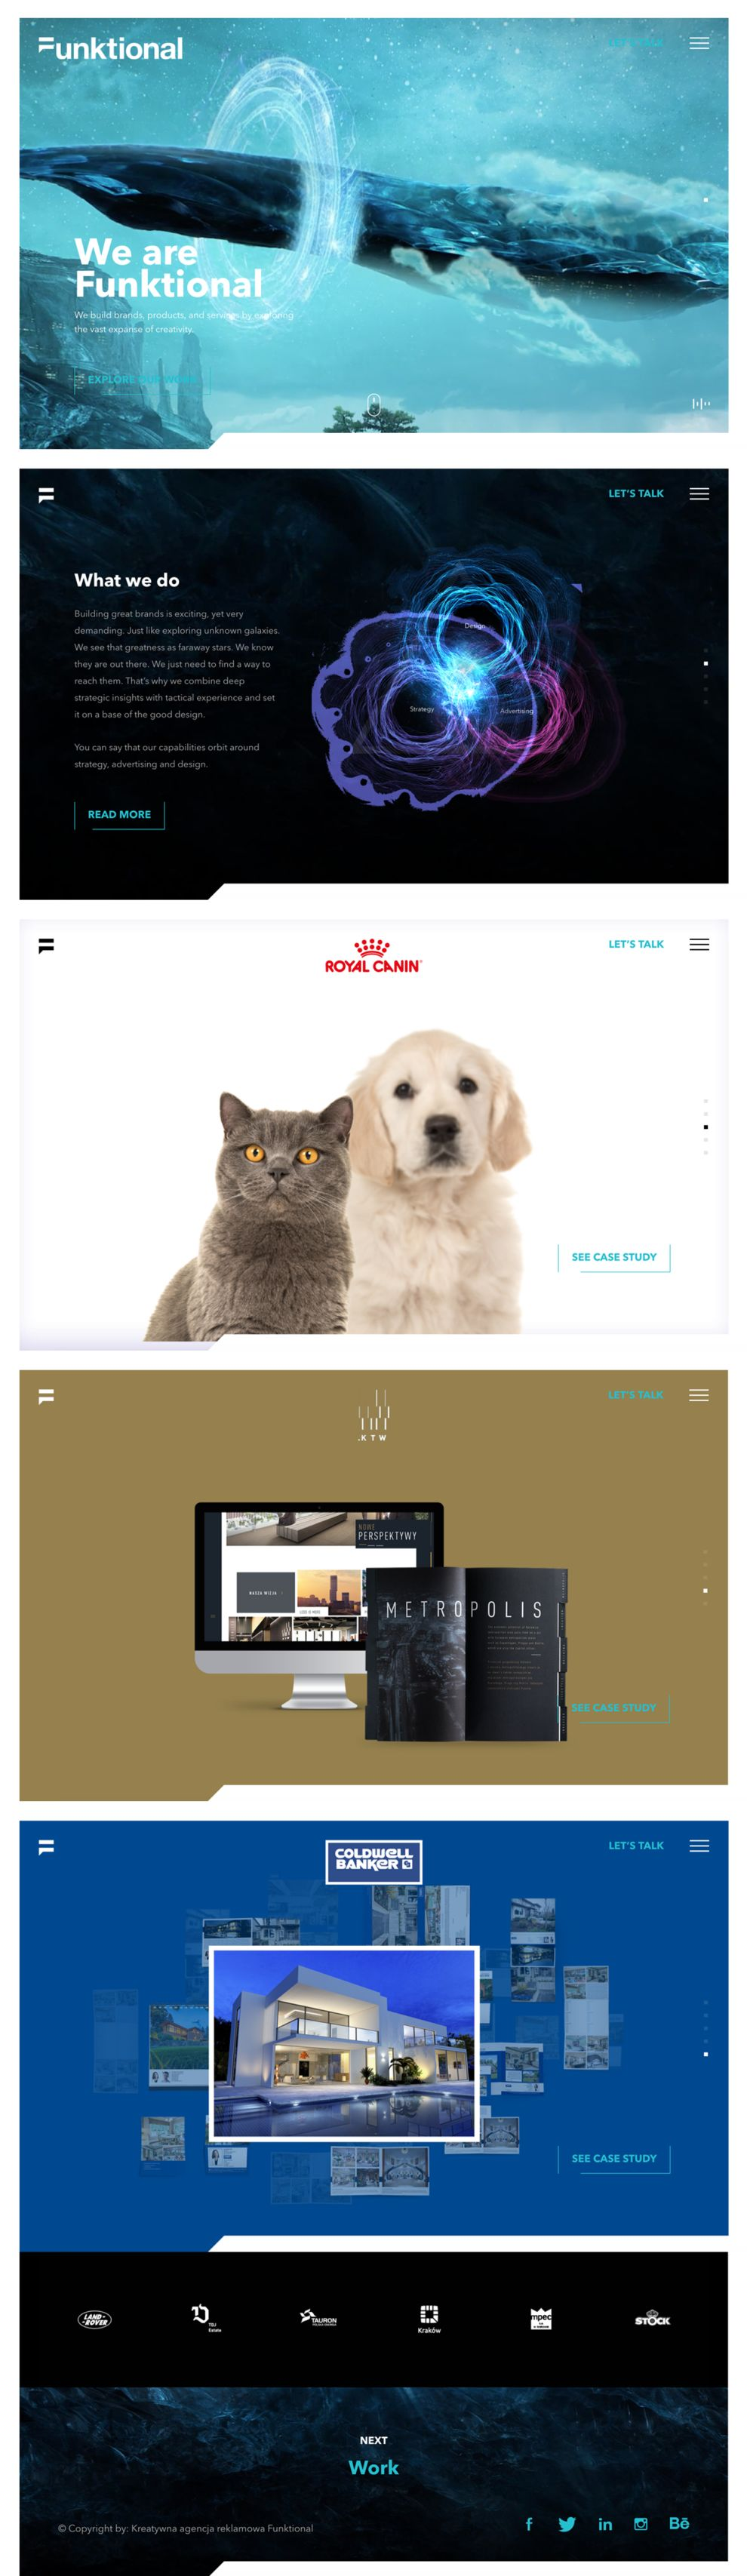 Funktional Stunning Homepage